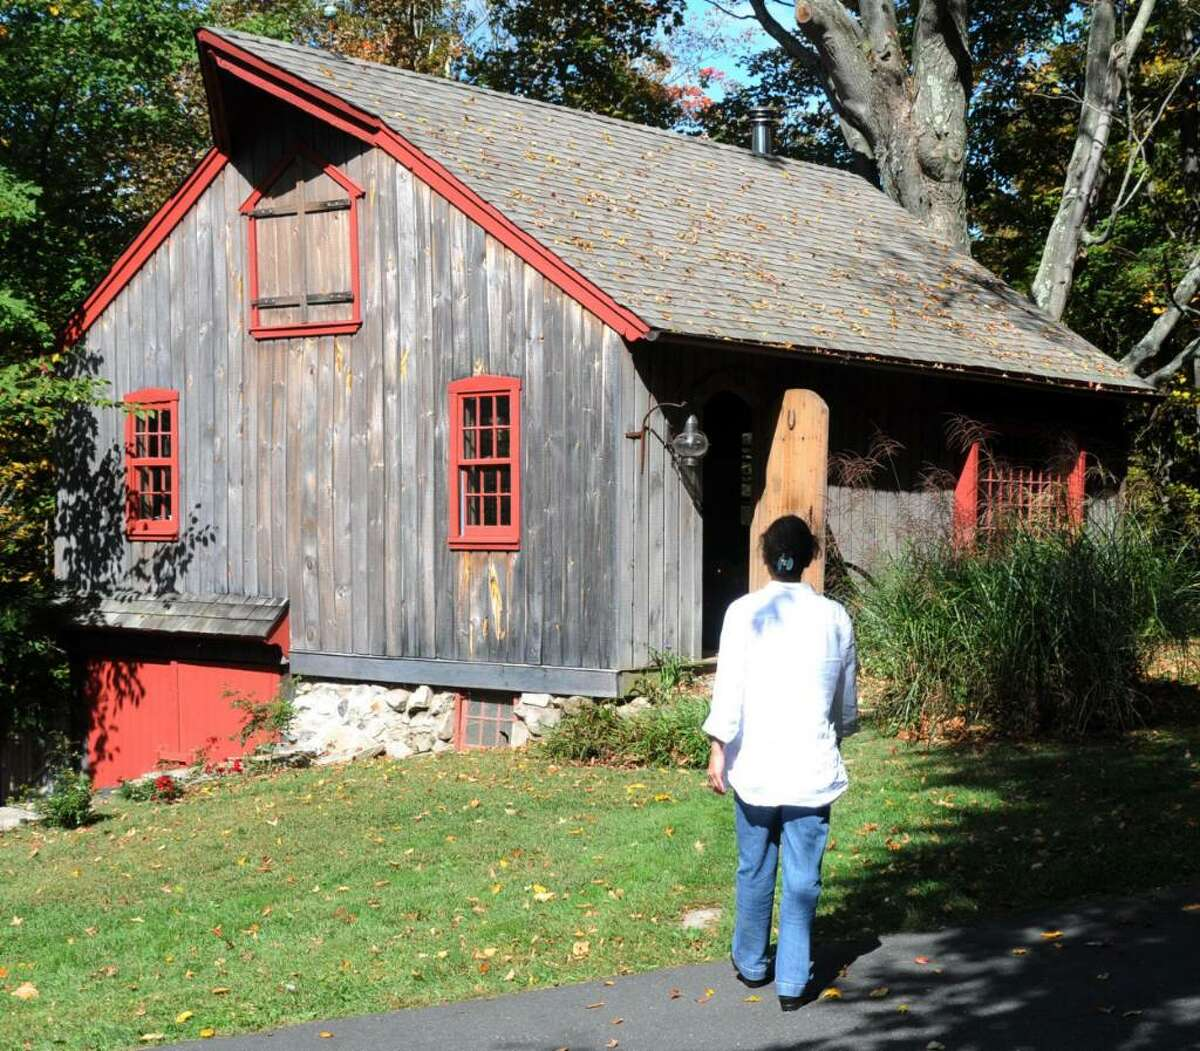 Owner and therapist, Lynn Carroll, of The Therapy Space in Sandy Hook, CT heads to her therapy studio just steps from her home, on Friday, Sept. 25, 2009. Carroll also has a therapy studio in Westport, CT.